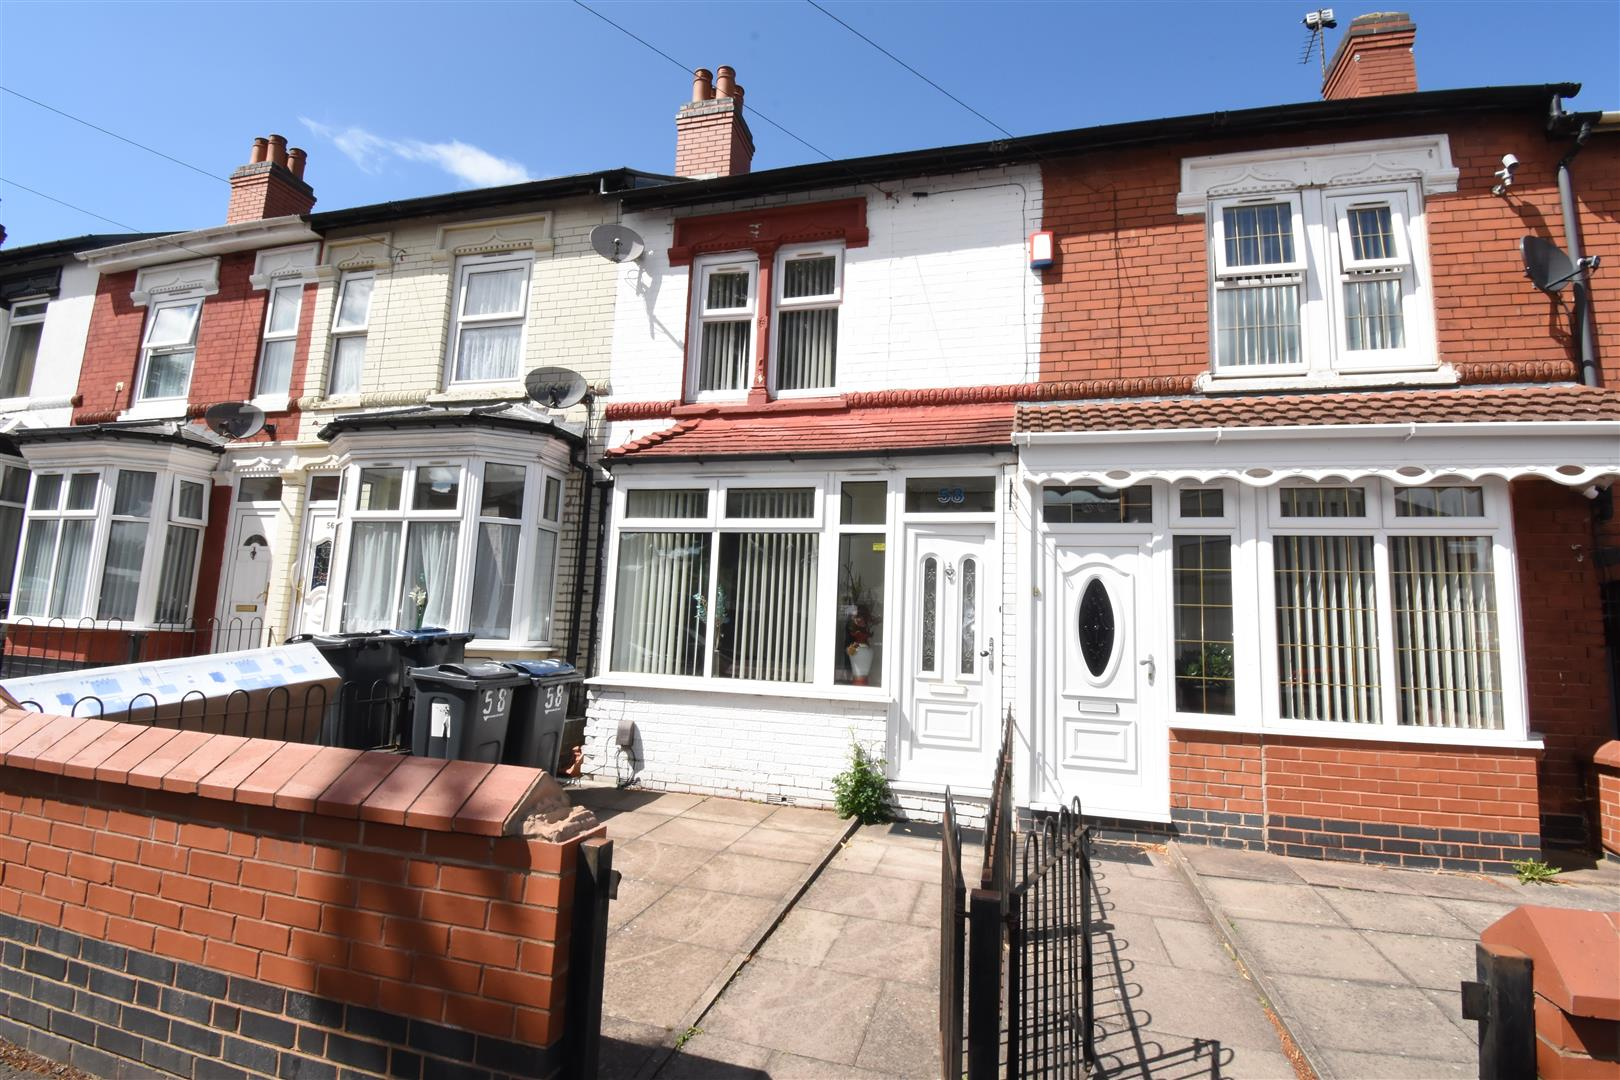 3 bed house for sale in Hazelbeach Road, Birmingham, B8